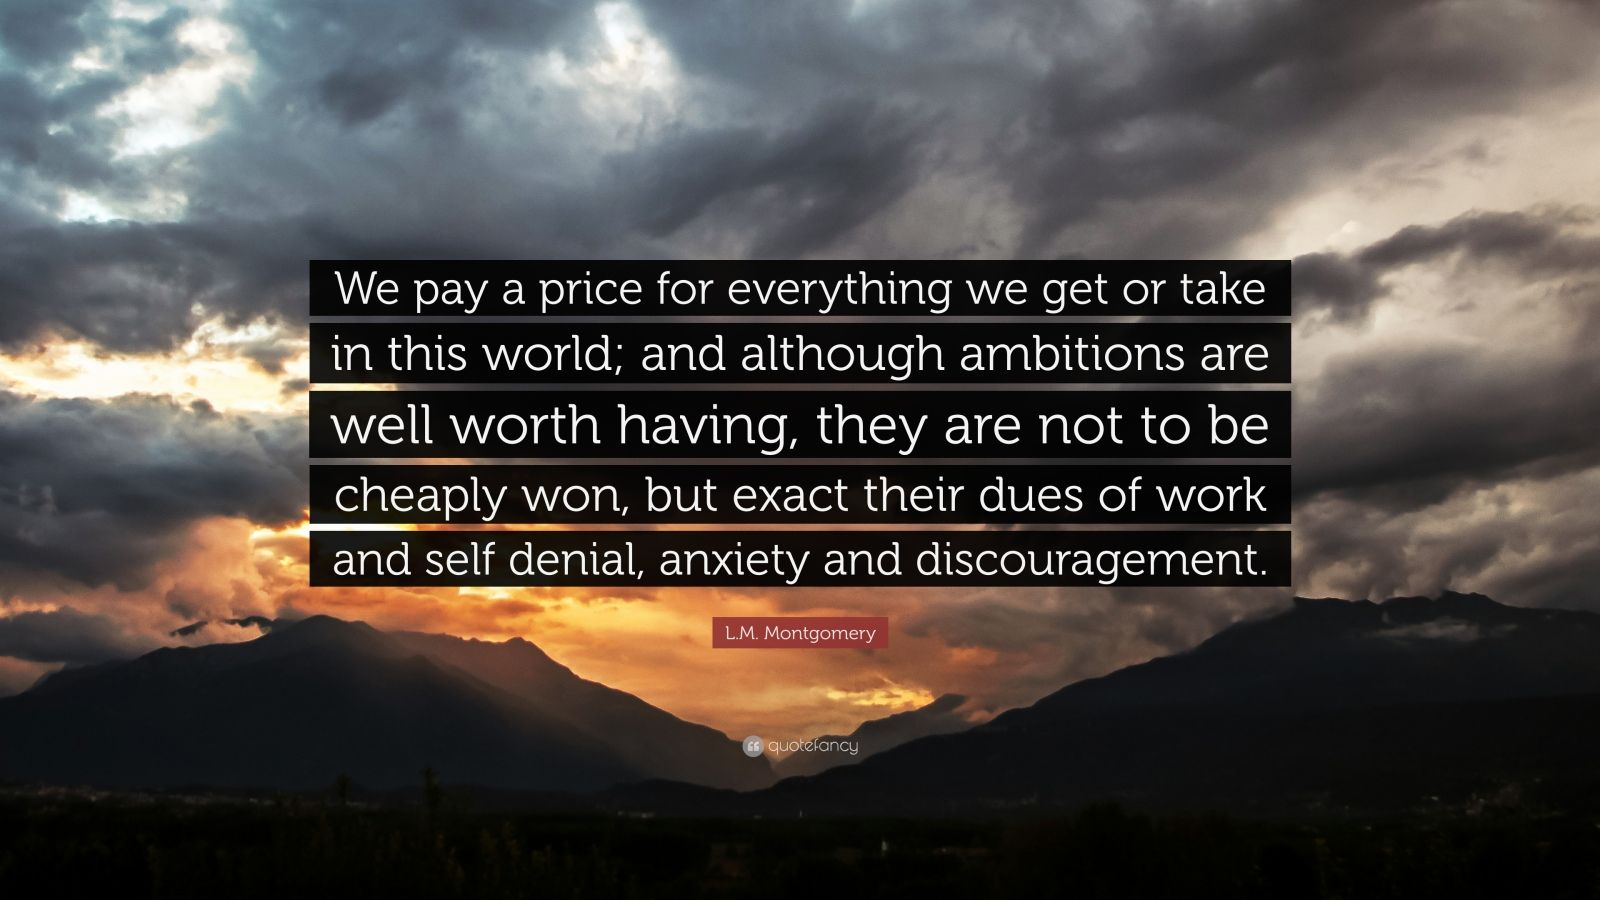 "L.M. Montgomery Quote: ""We pay a price for everything we get or take in this world; and although ambitions are well worth having, they are not to be cheaply won, but exact their dues of work and self denial, anxiety and discouragement."""